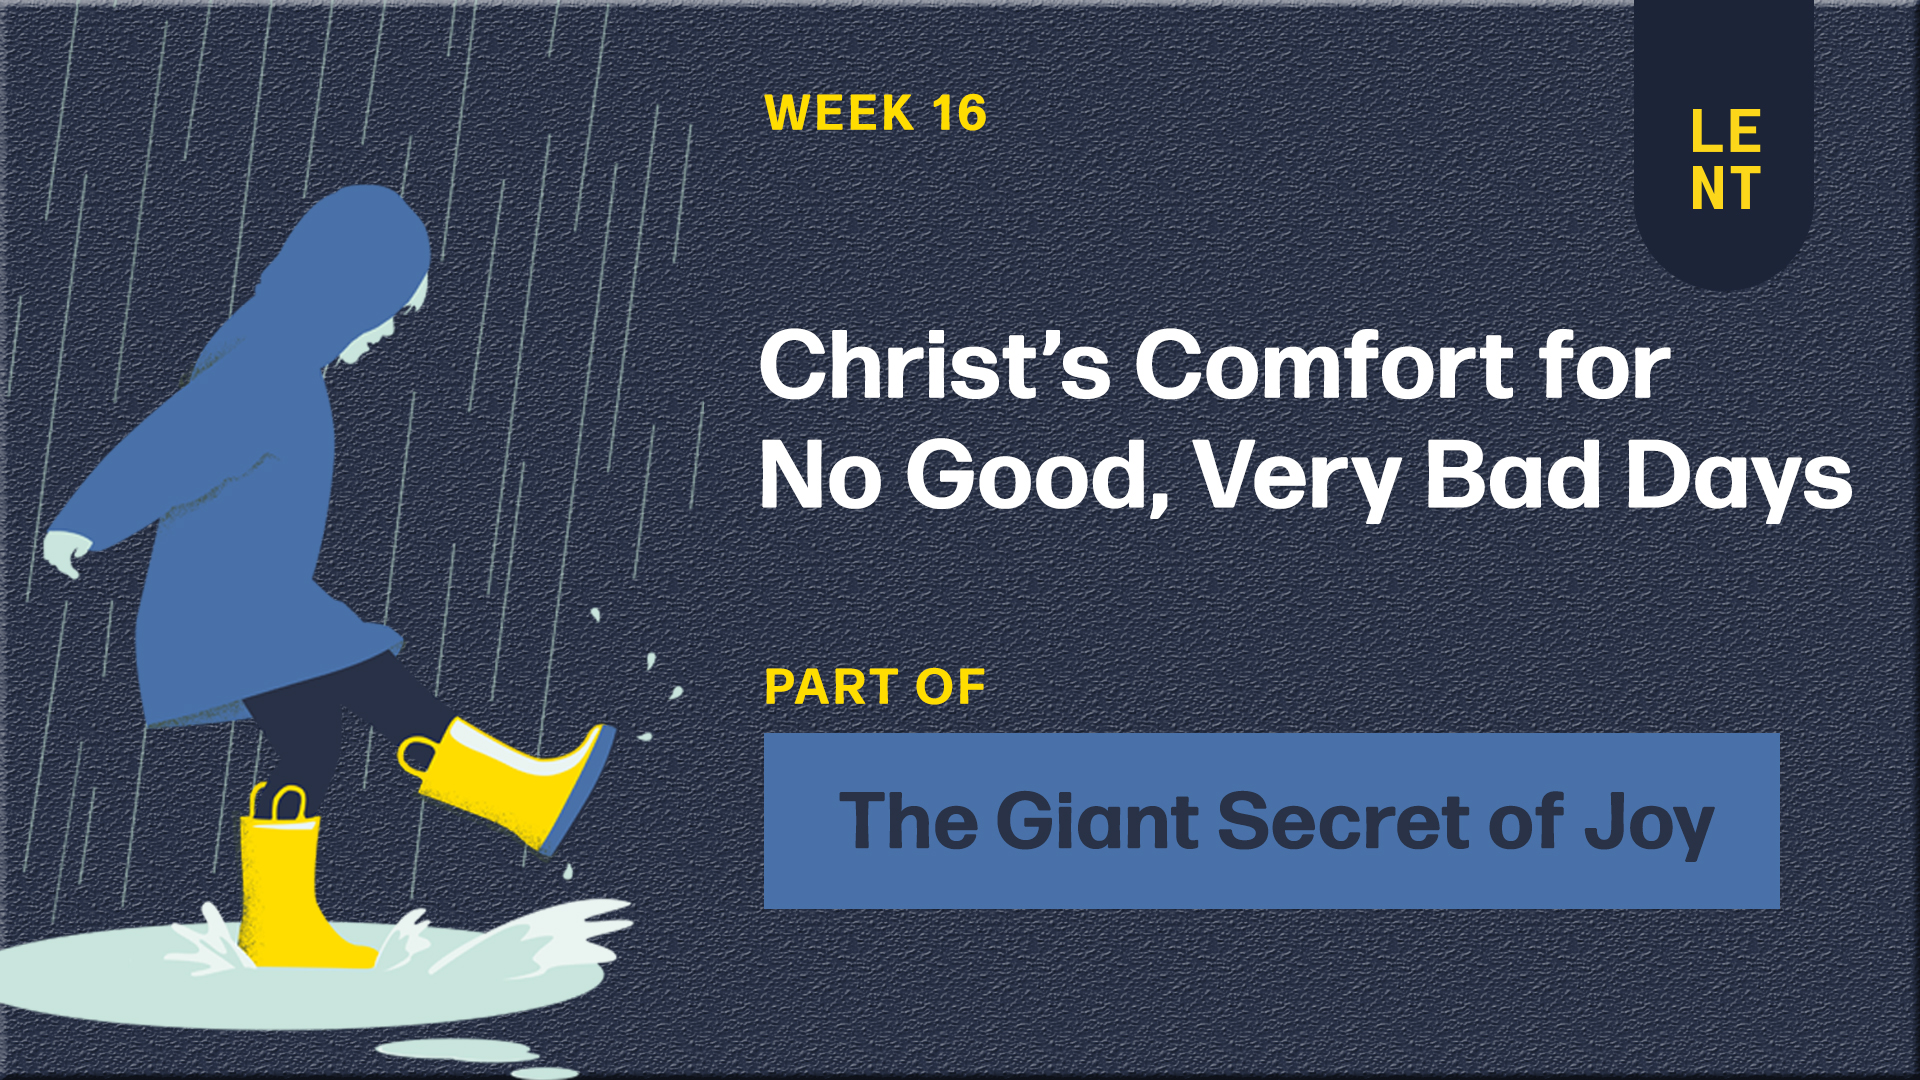 Christ's Comfort for the No Good, Very Bad Days